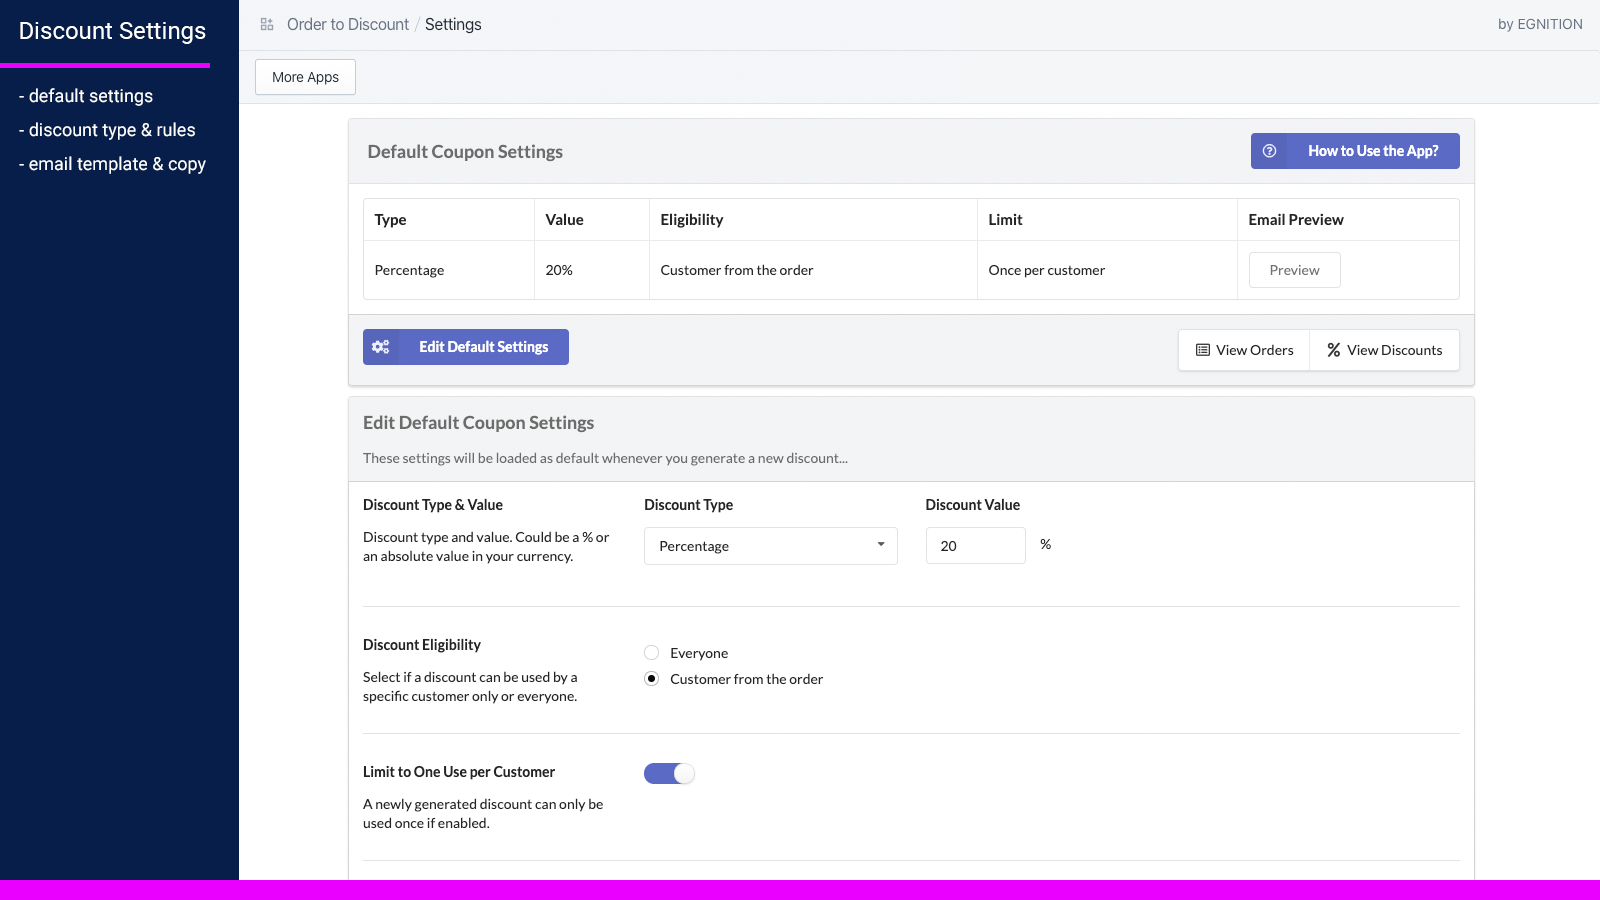 Order to discount main settings page.